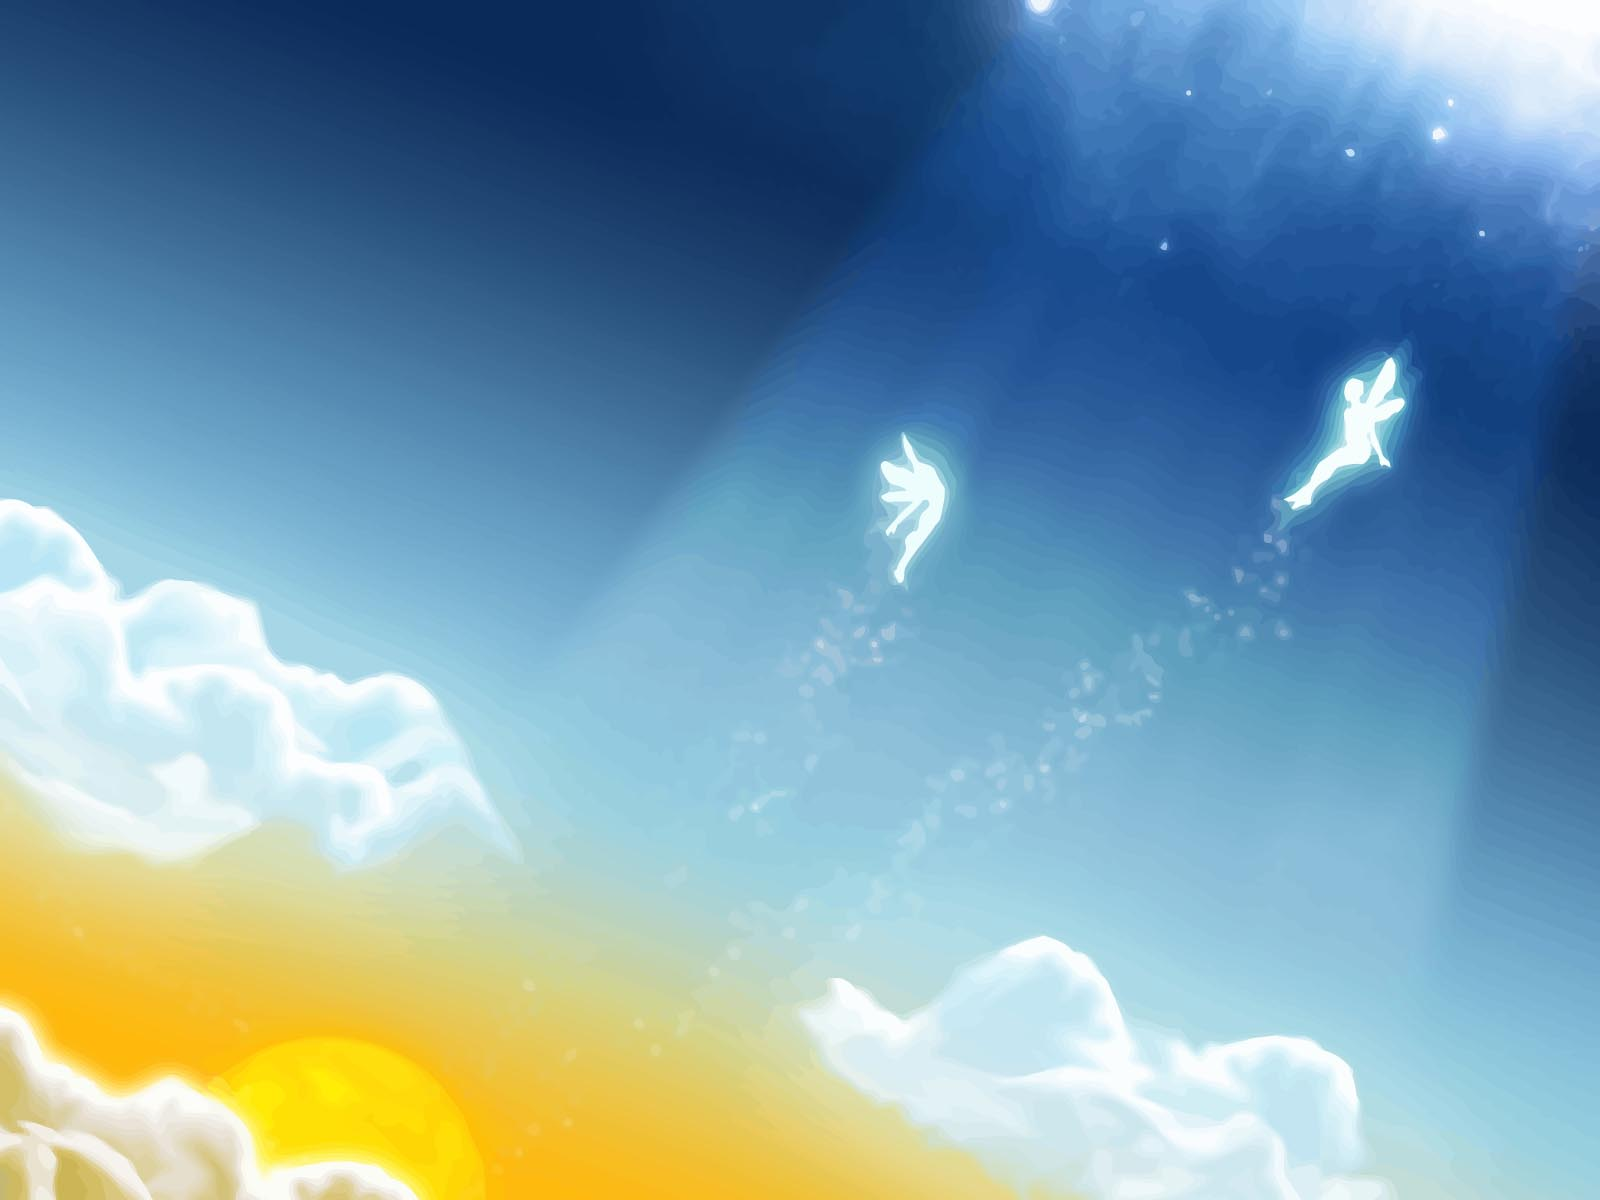 Fairytale Sky Clouds Backgrounds